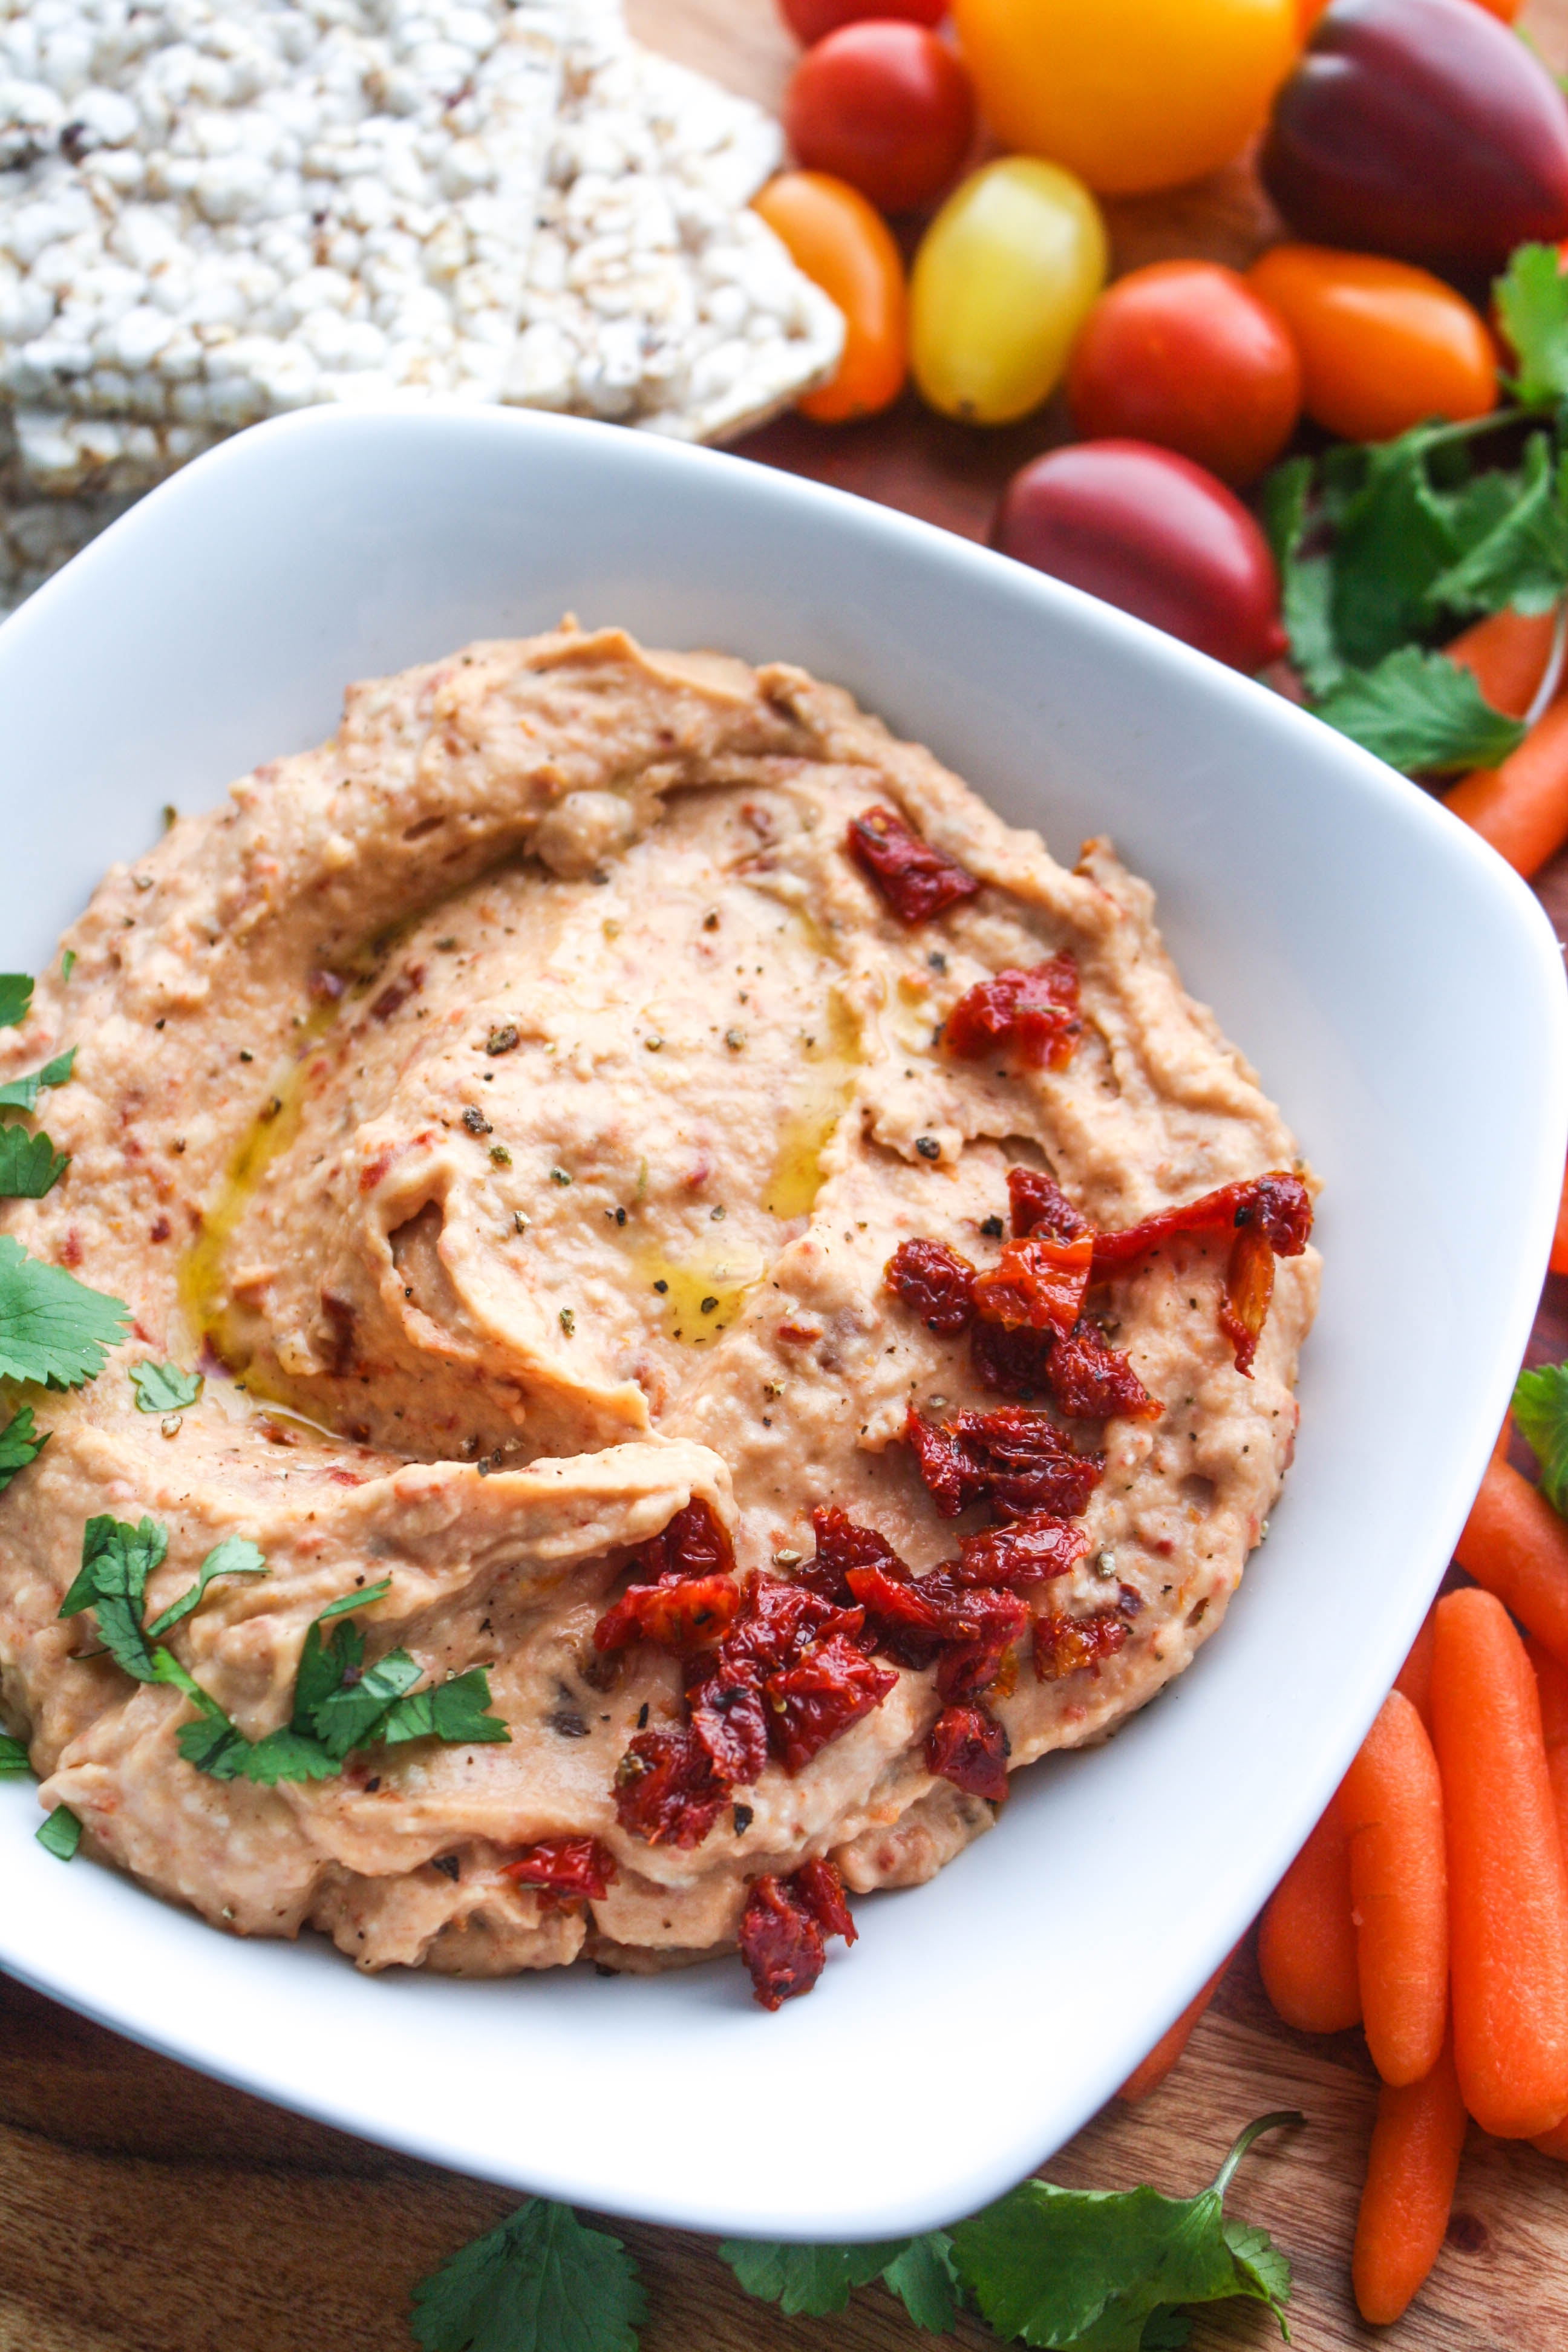 Roasted Garlic and Sun-Dried Tomato Hummus is a fabulous snacking option. You'll love this hummus with roasted garlic and sun-dried tomatoes.